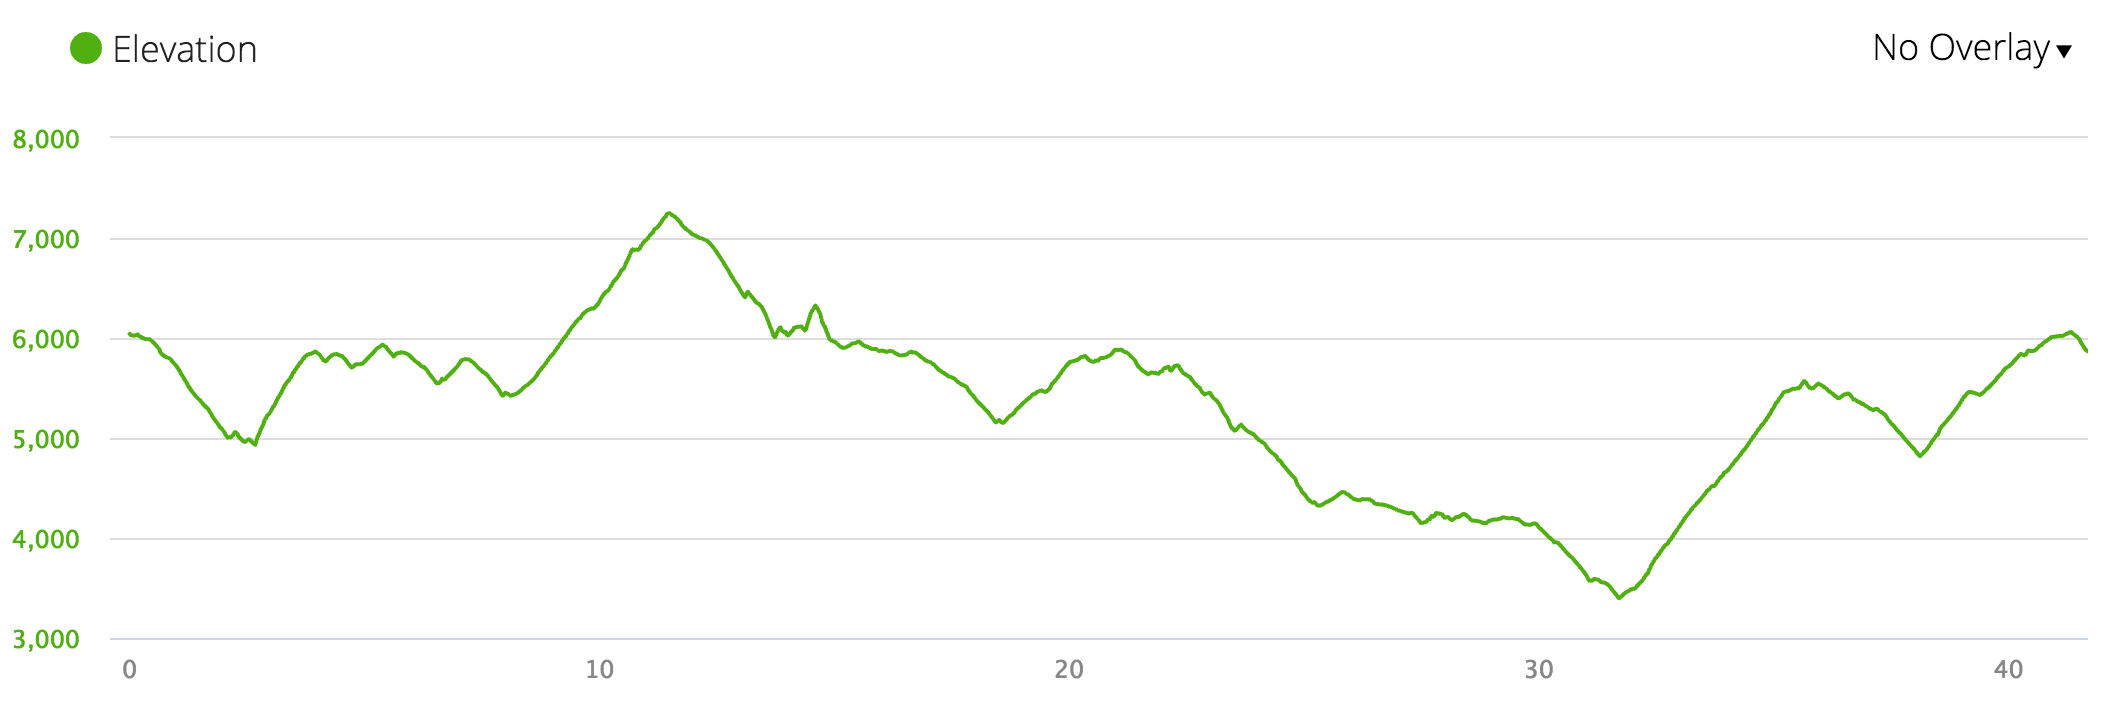 That climb up from mile 31? Yeah, not awesome.